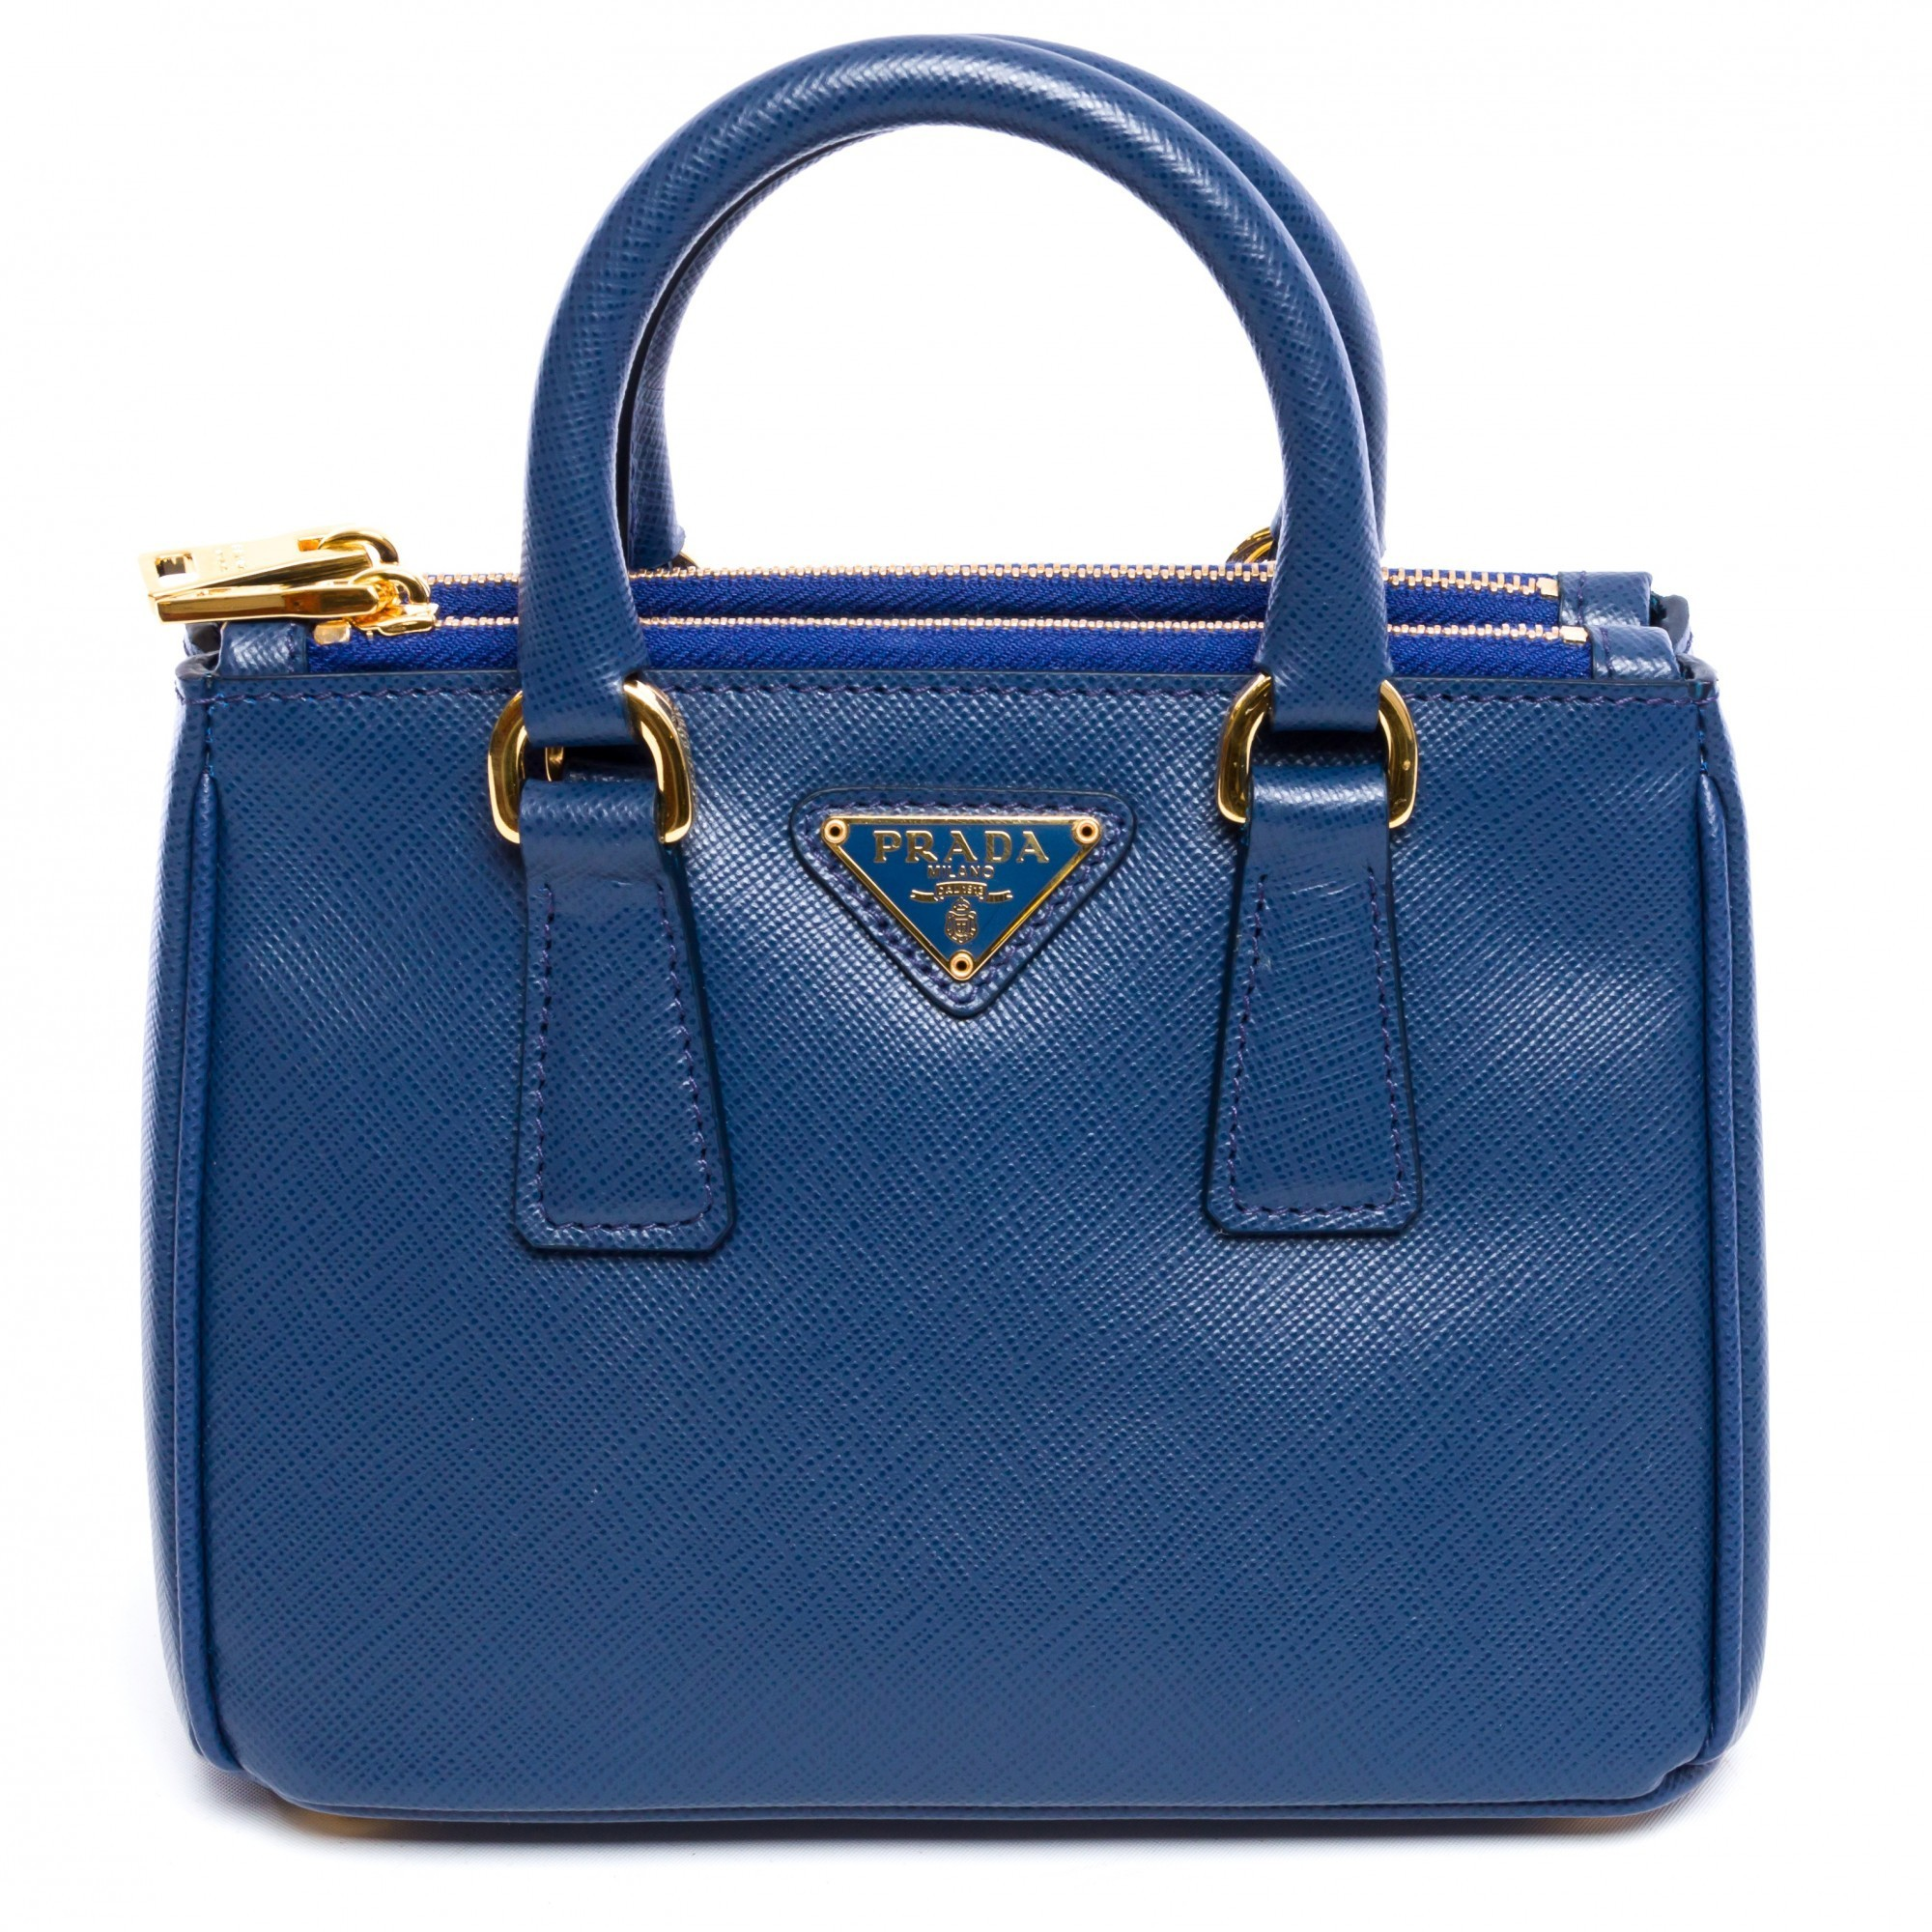 Prada Saffiano Mini Galleria 1BH907 Bluette Saffiano Blue Leather ...